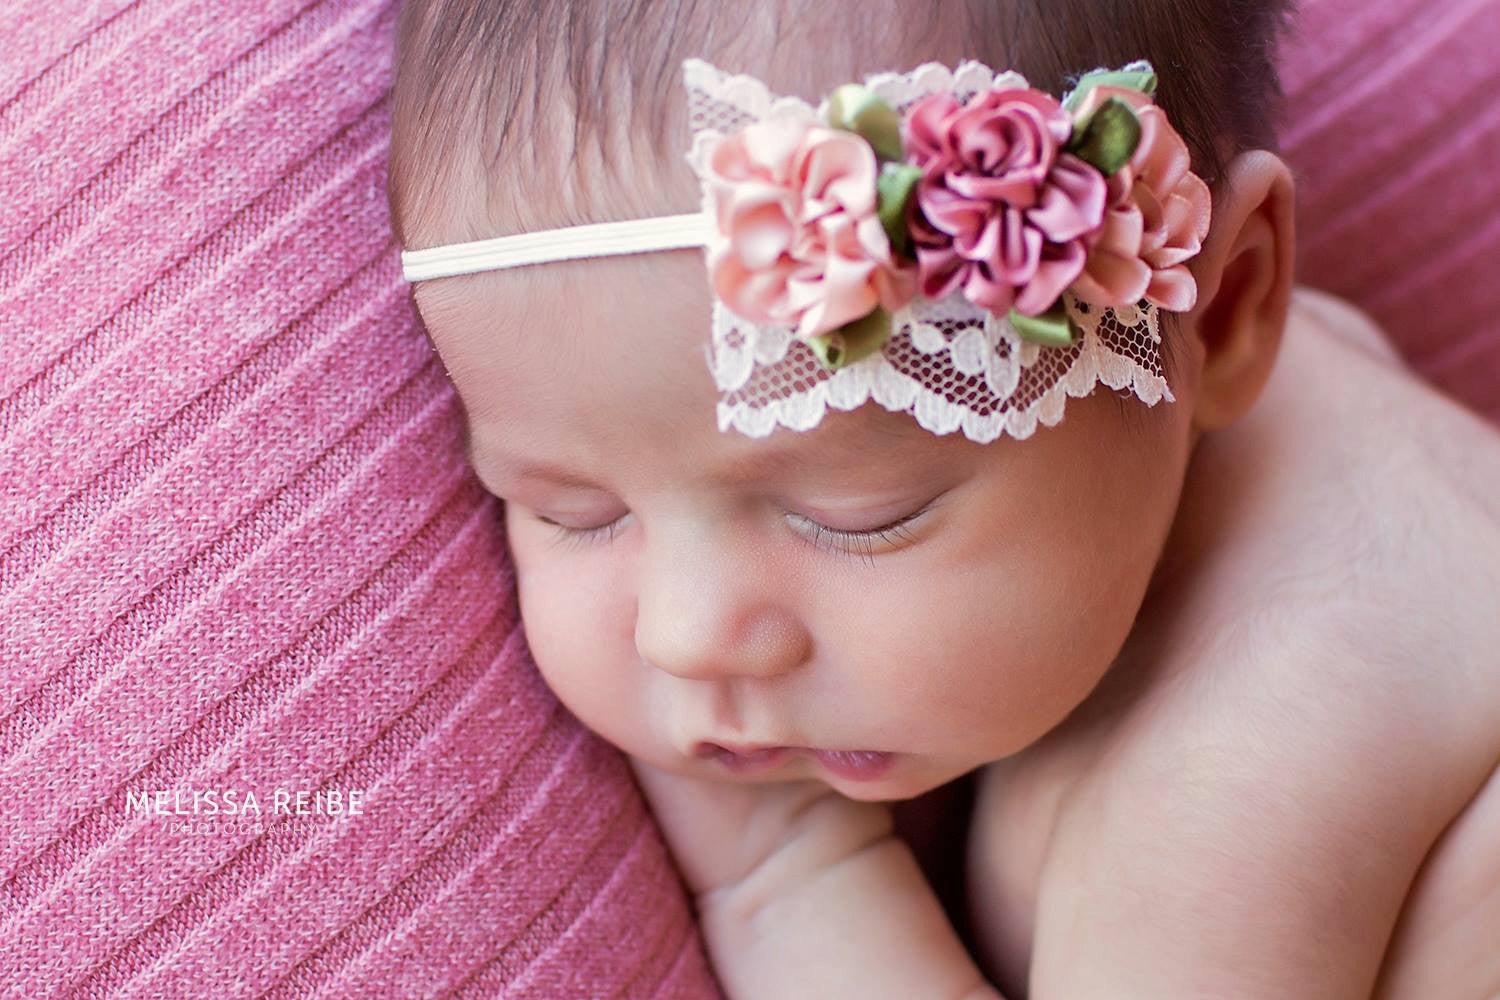 Dainty Baby Headband Vintage Inspired Baby Girl Headband Newborn Infant  Toddler Rose Lace Blush Headband Photo Prop (Vintage Blush Roses) 556b88569eb